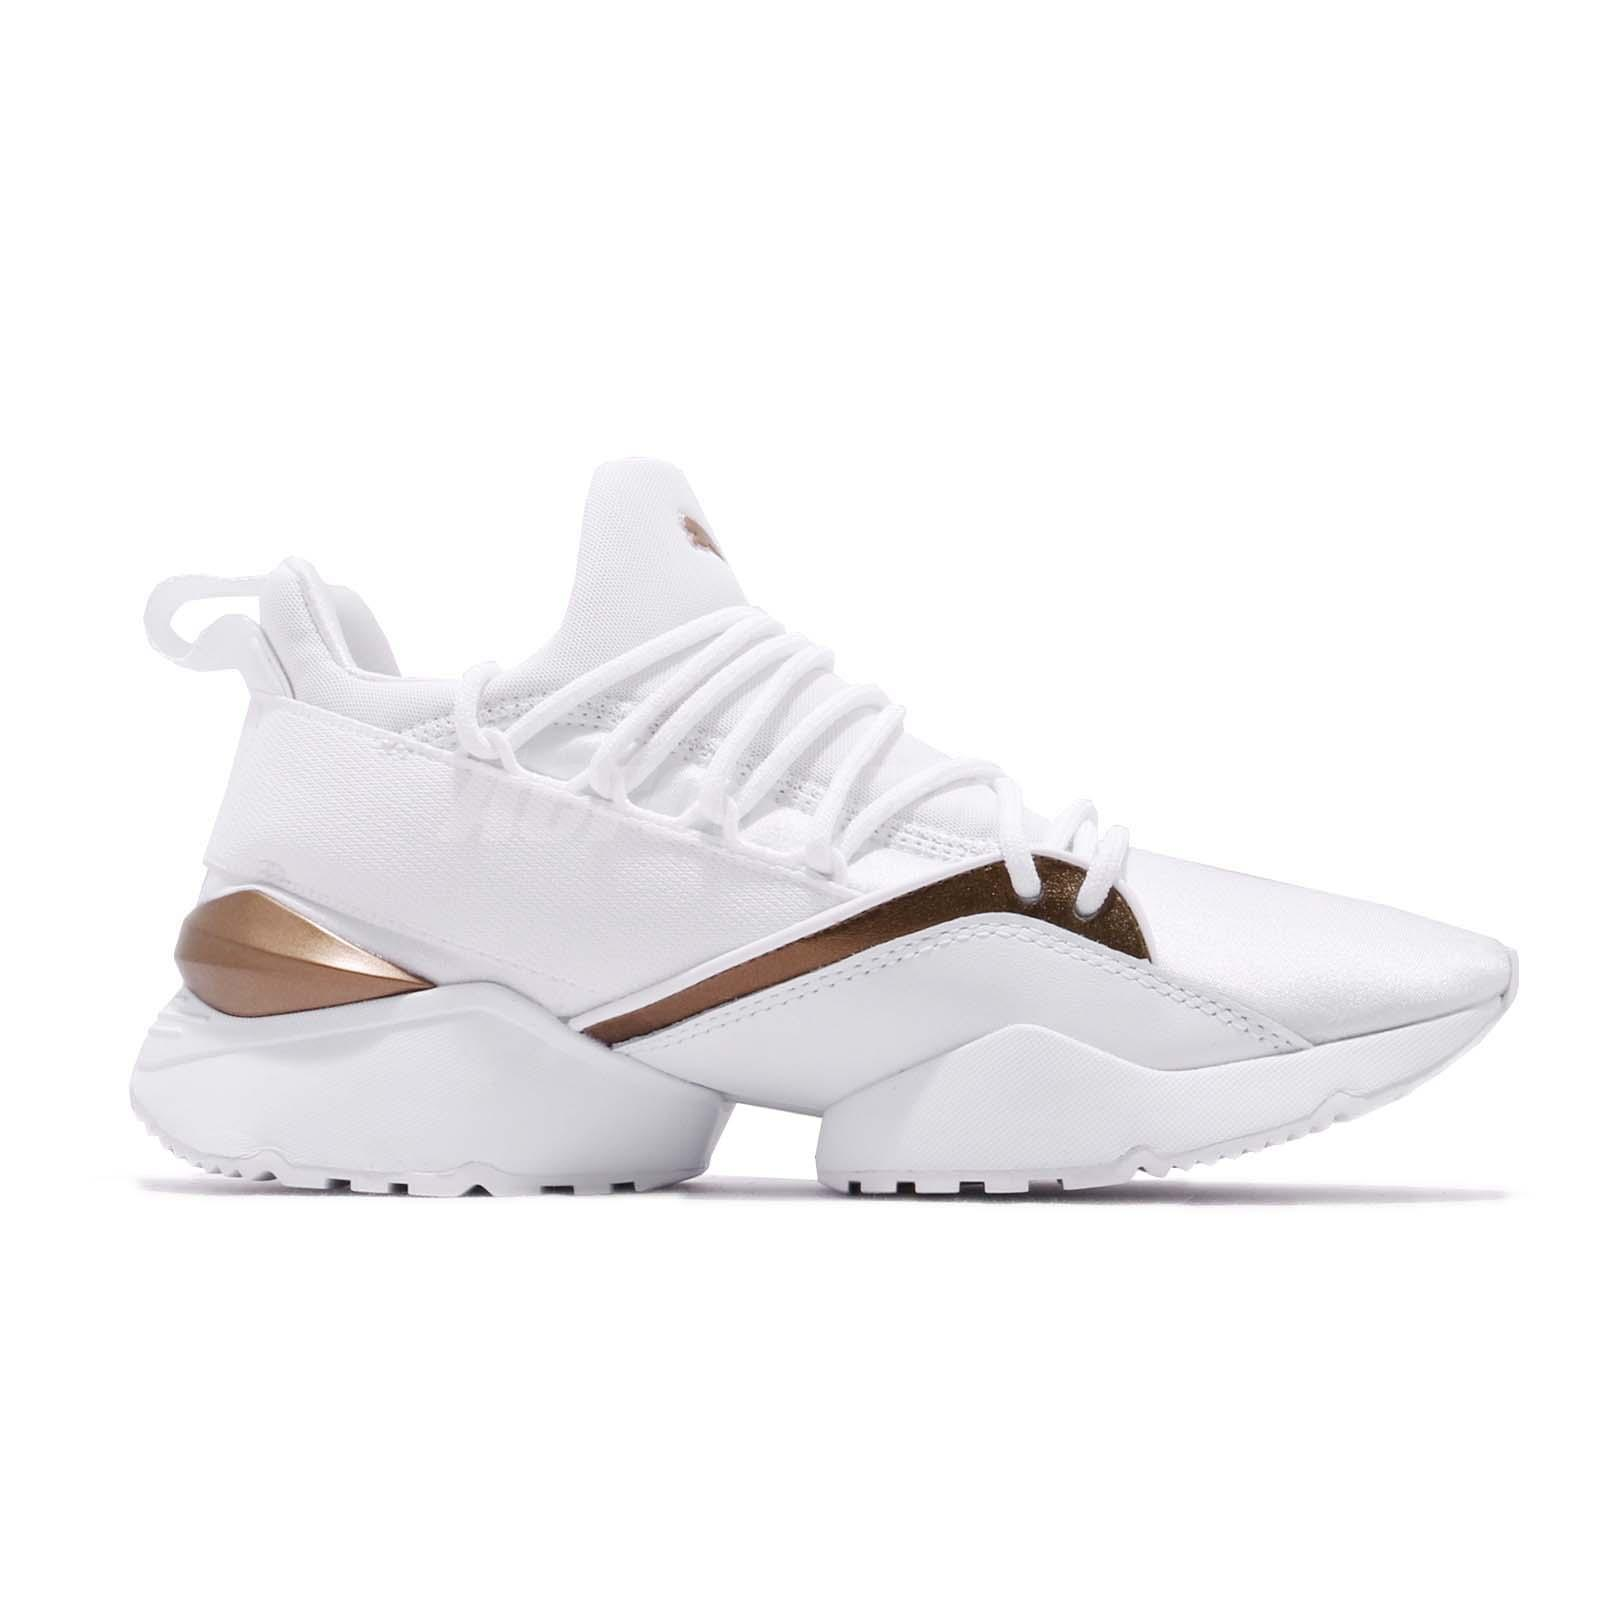 b99ef3397b Details about Puma Muse Maia Luxe Wns White Women Running Casual Lifestyle  Shoes 366766-02